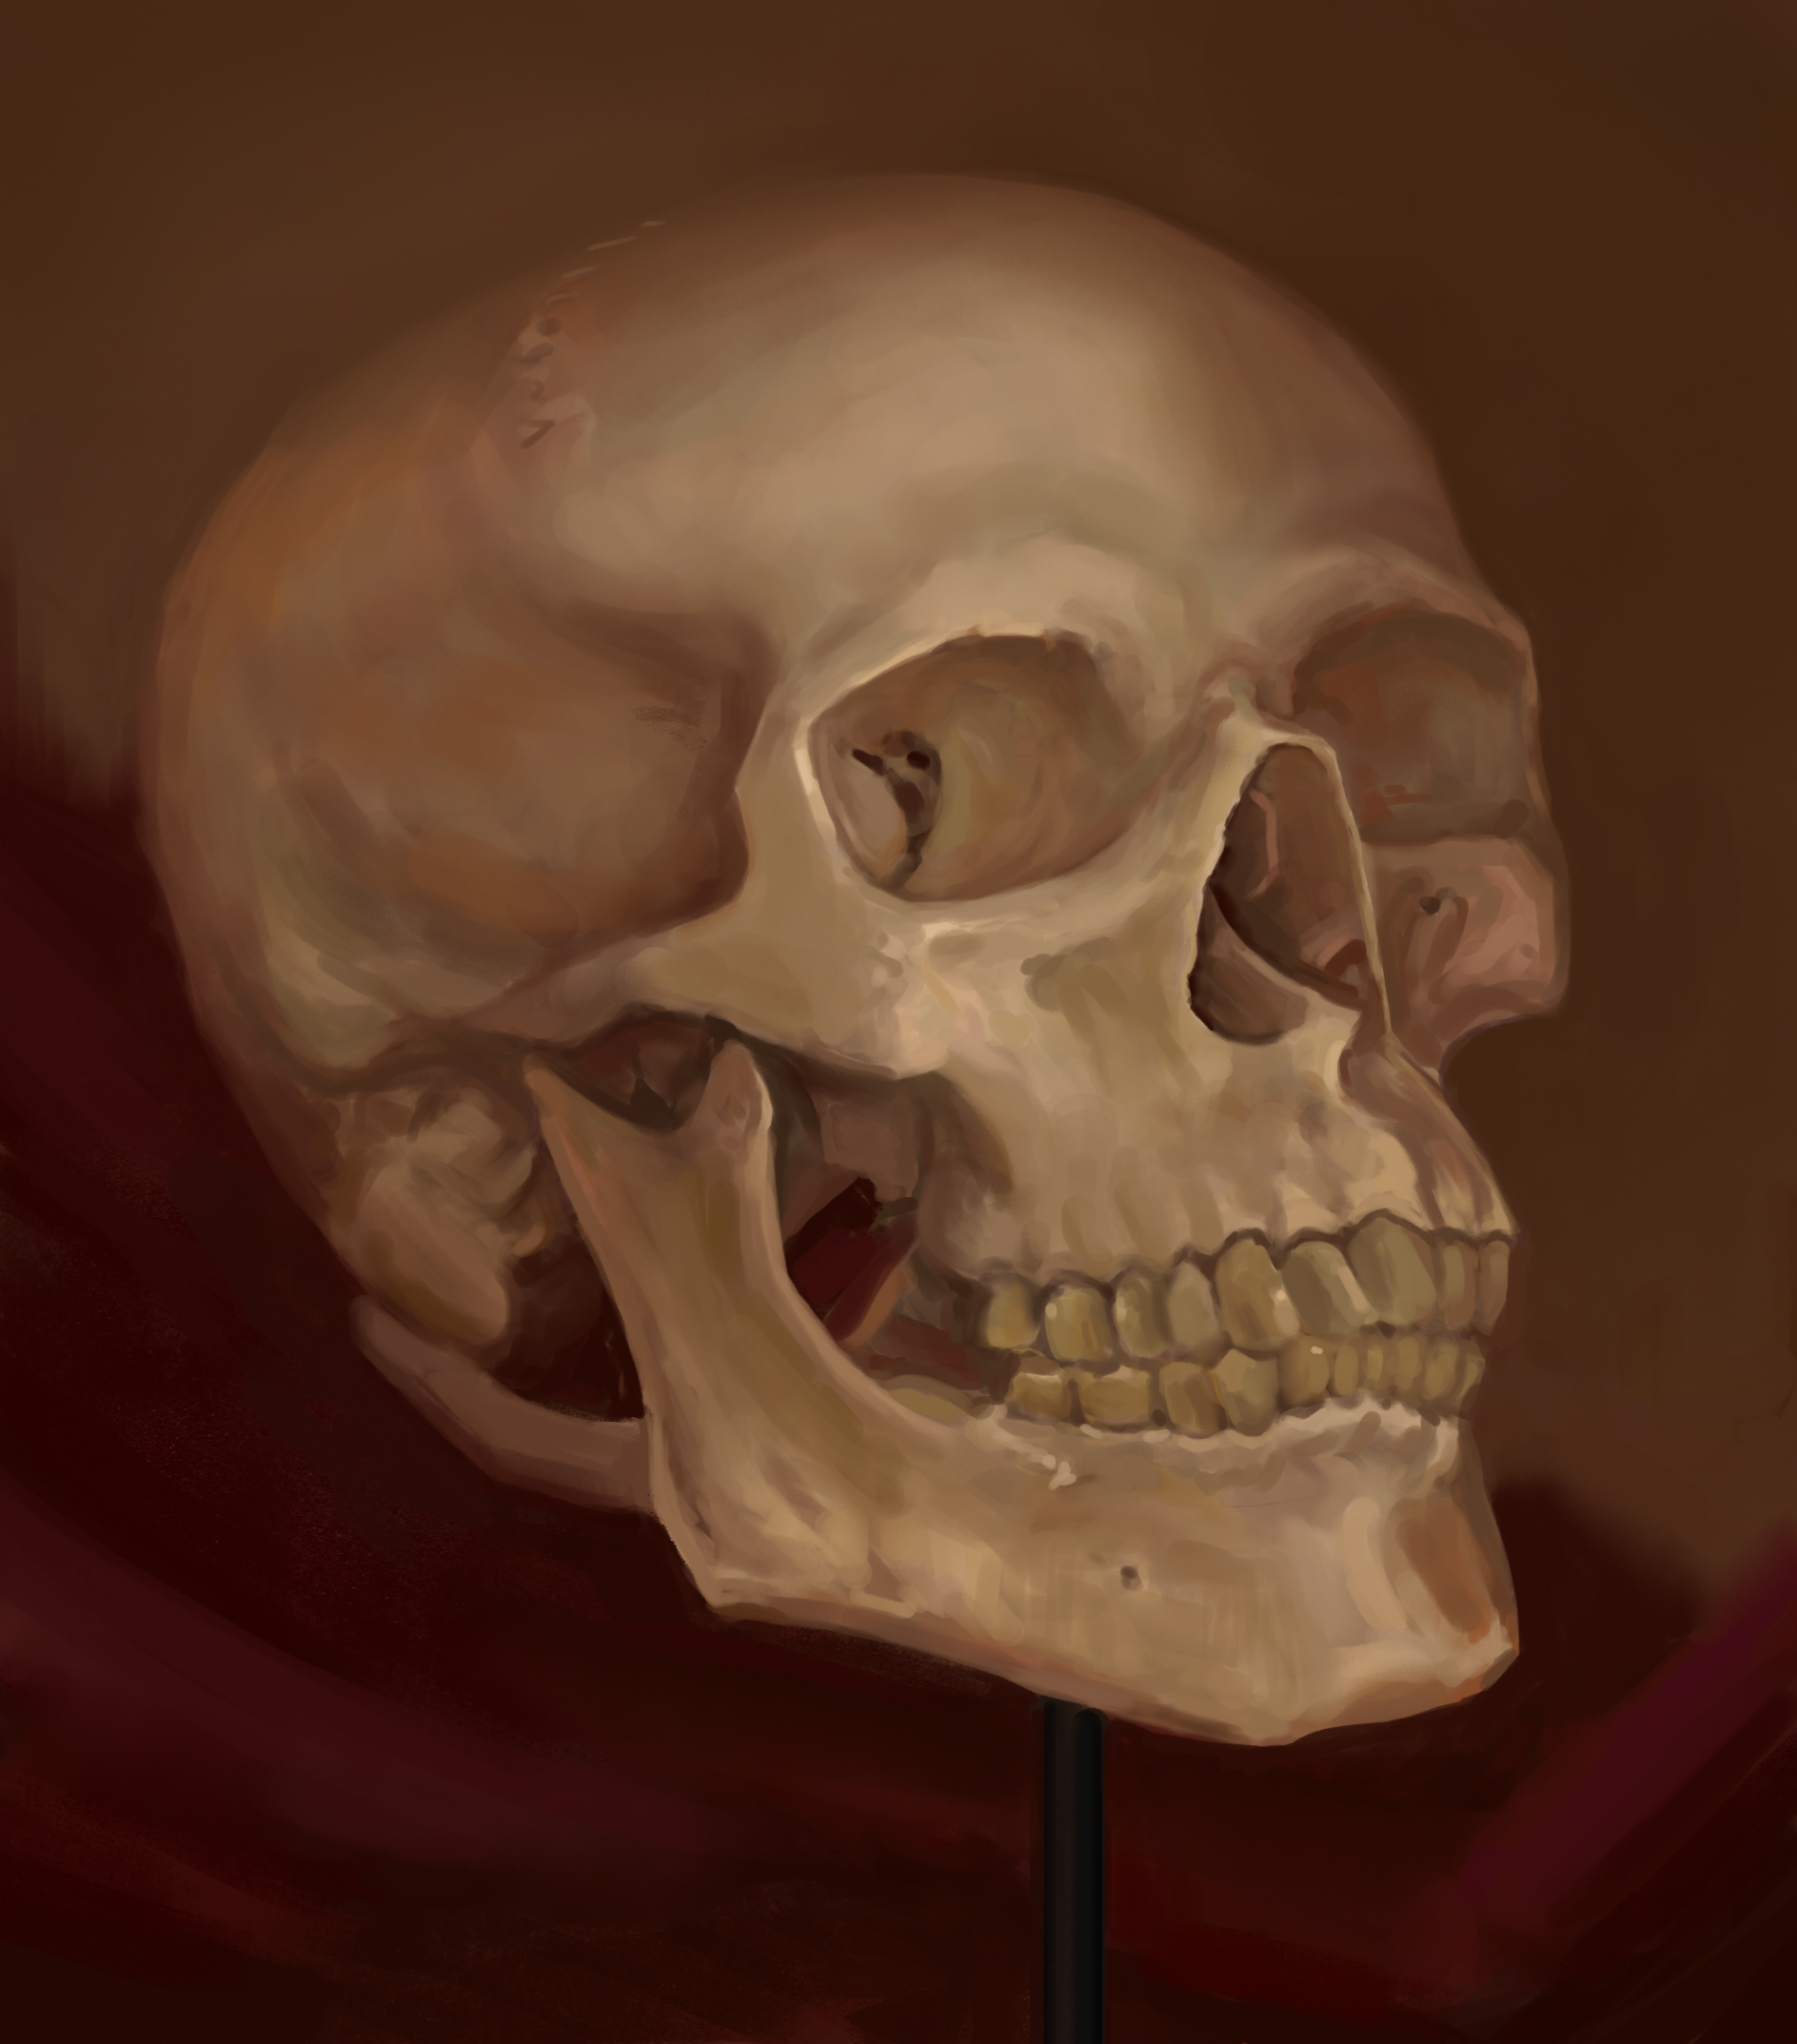 Painting a skull from life - process video